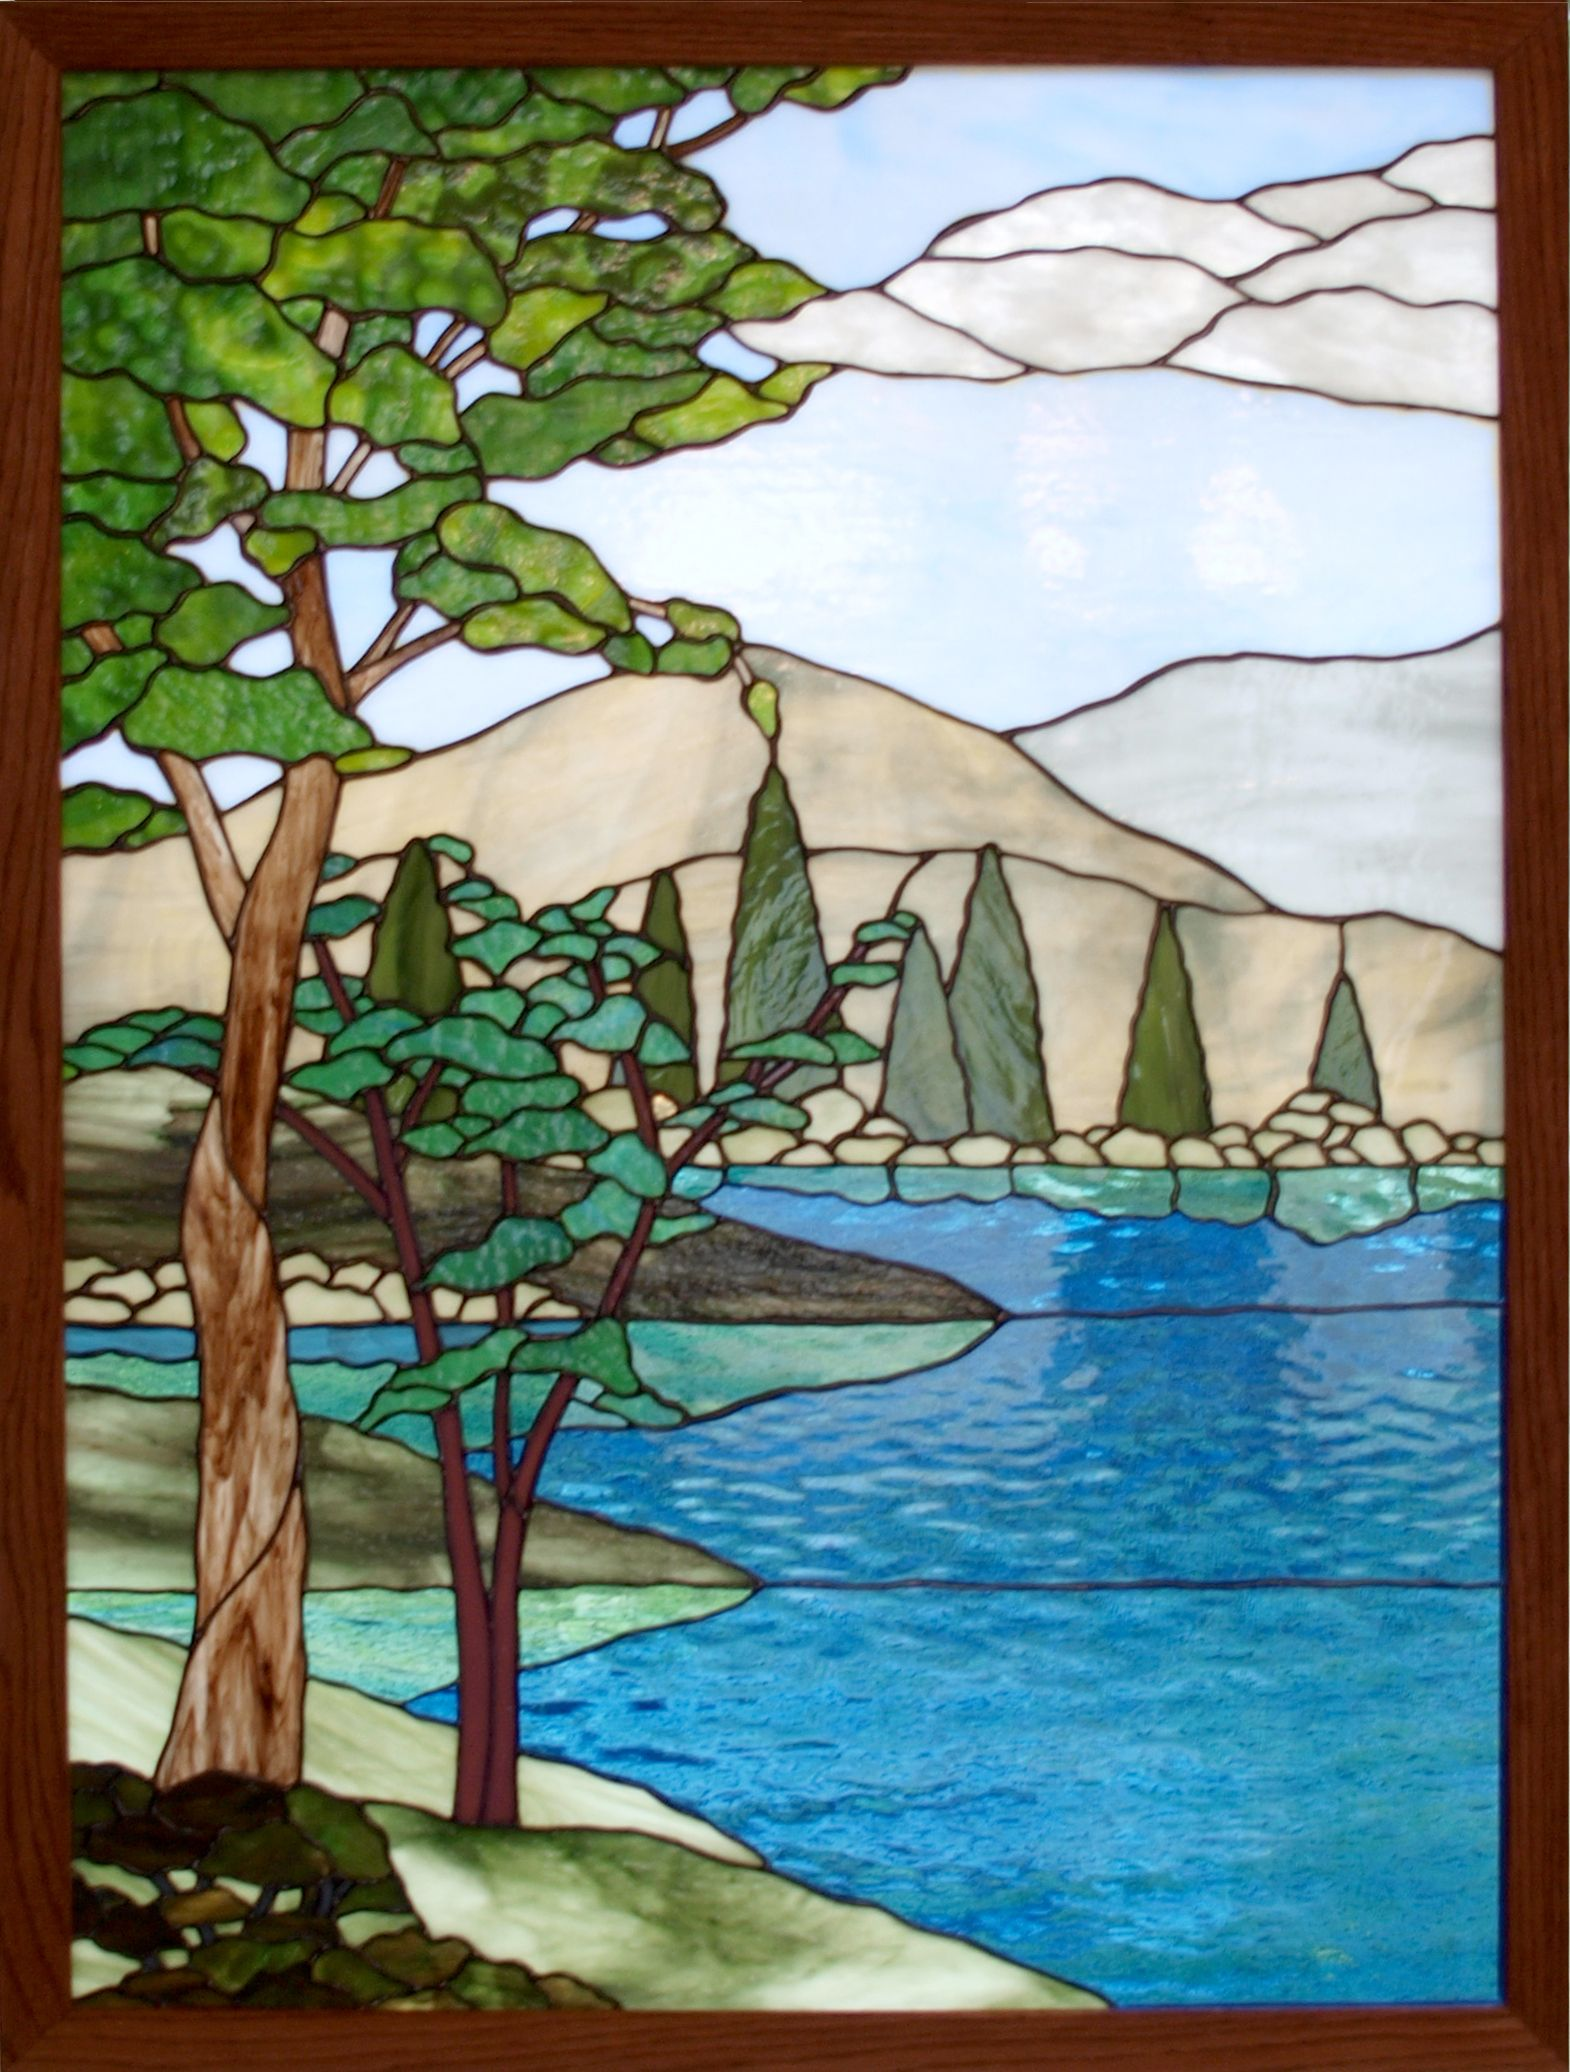 Stained Glass Stained Glass Stained Glass Mosaic Stained Glass Patterns